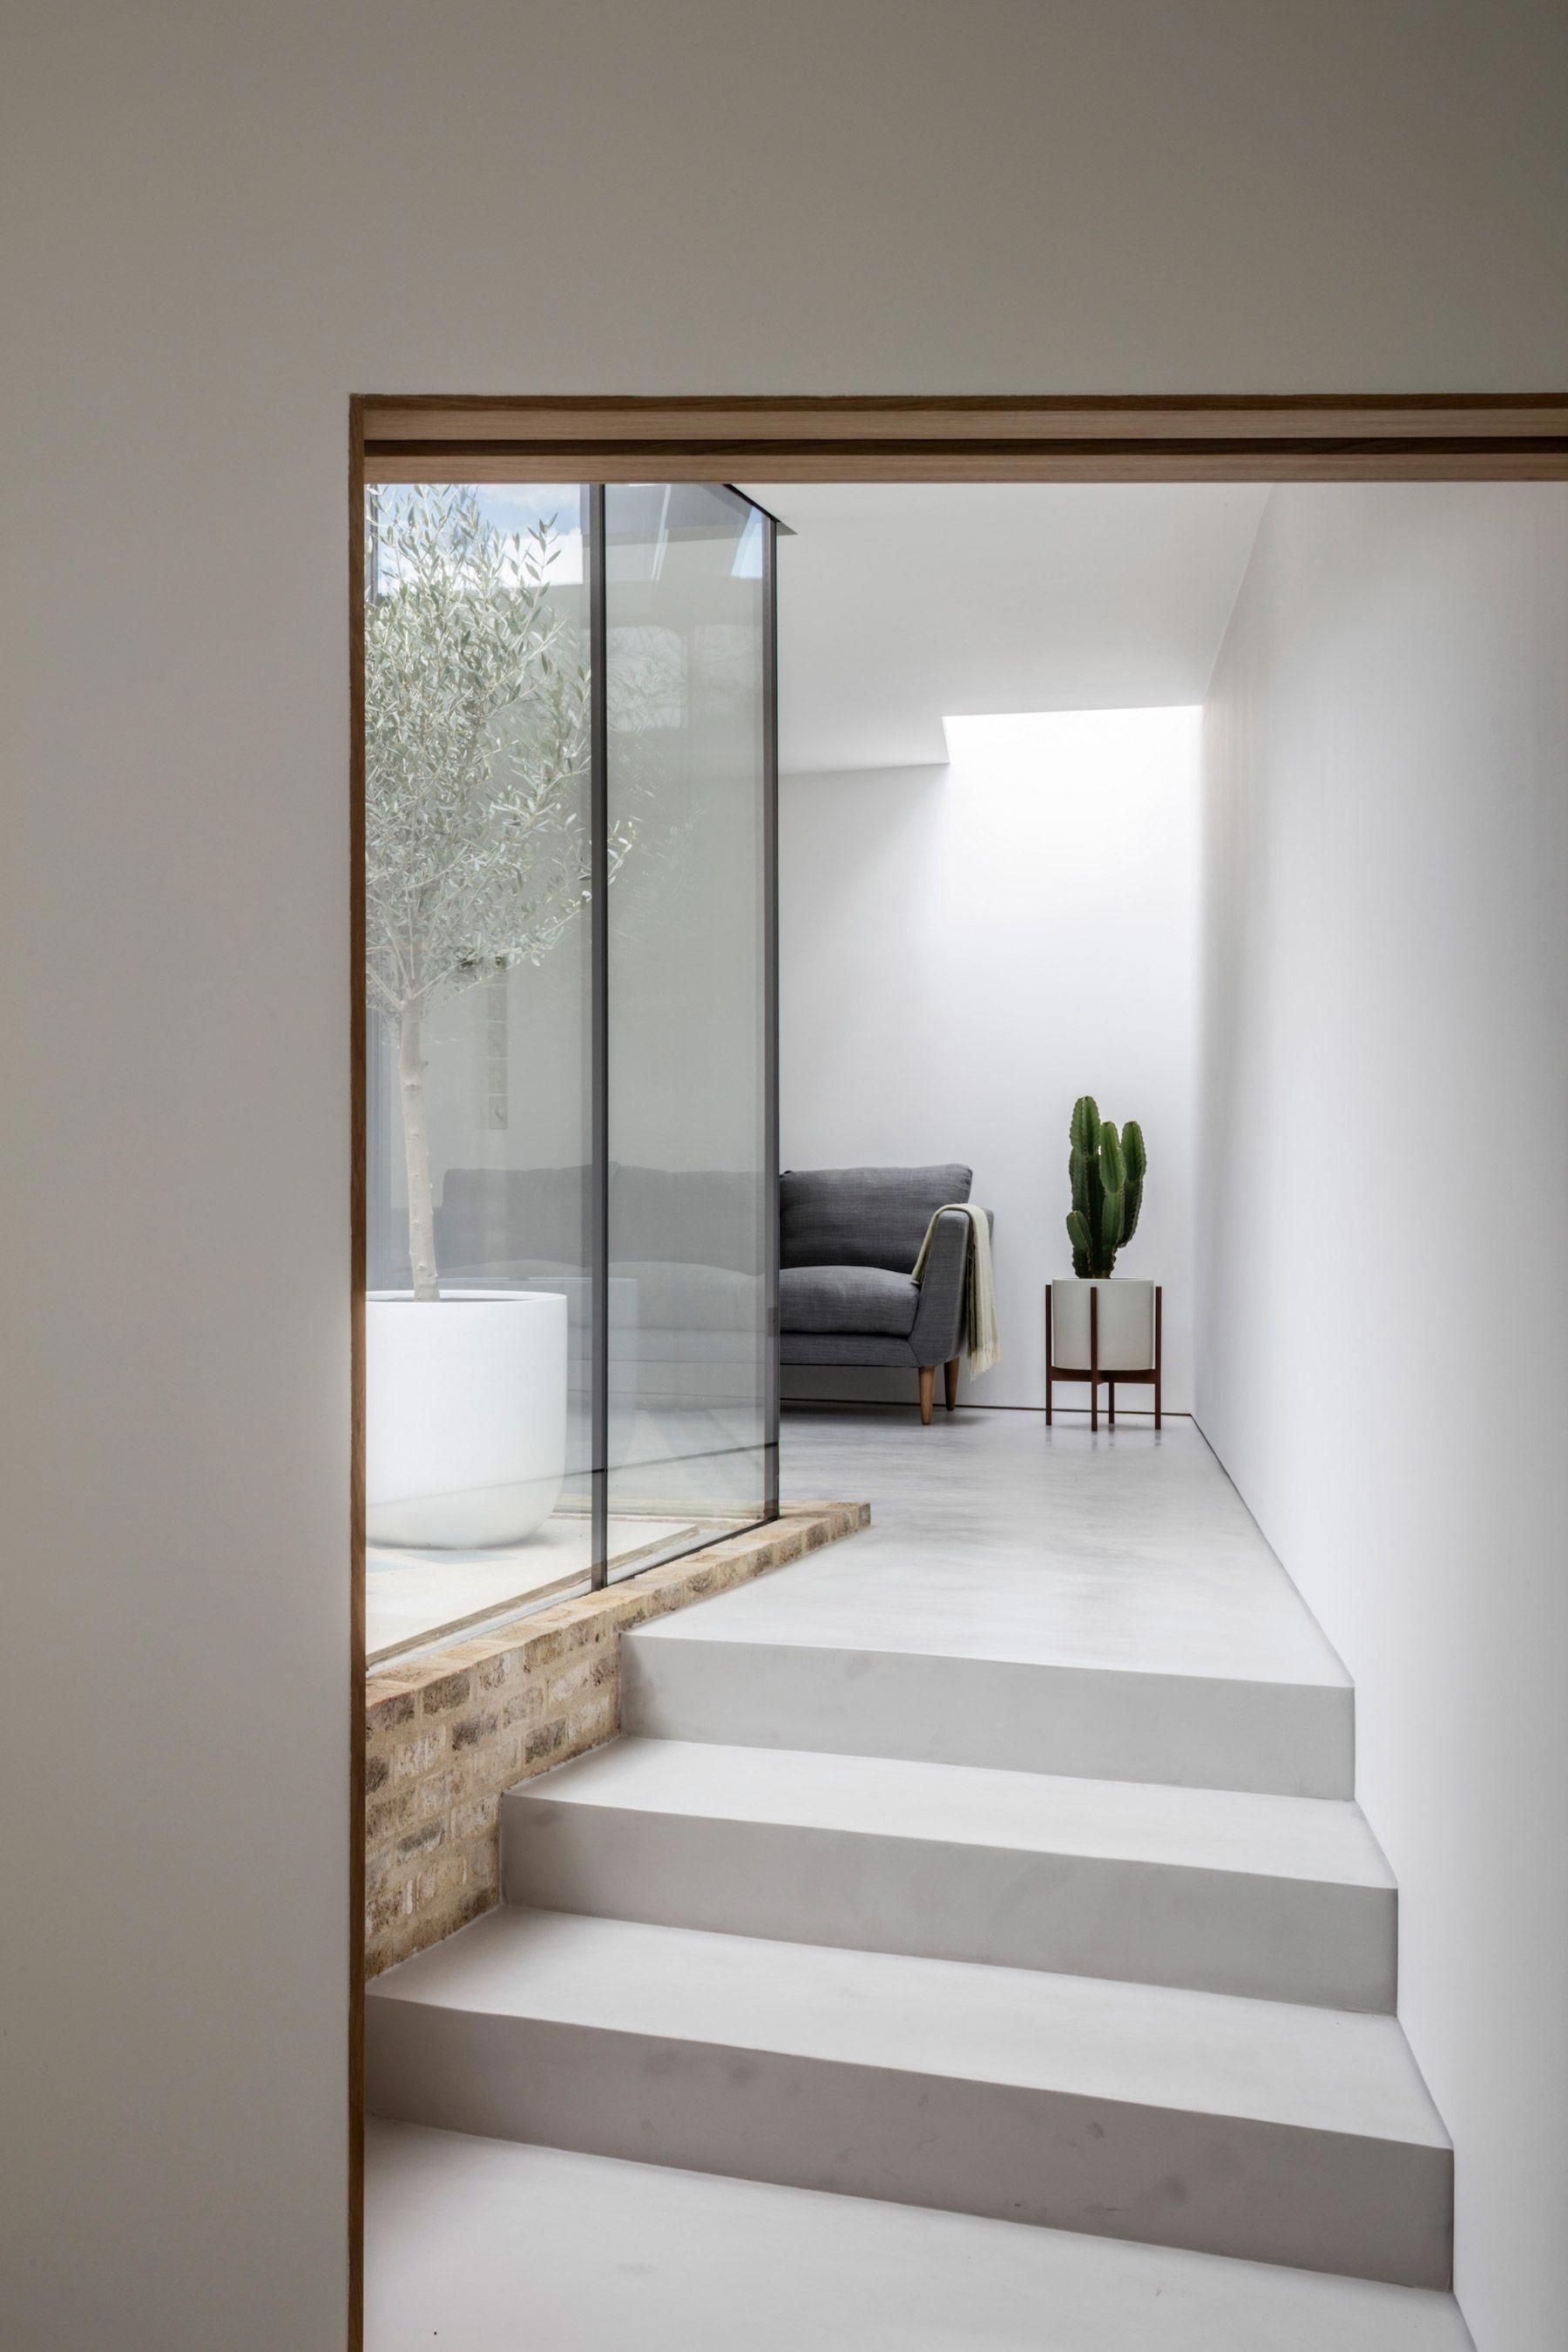 Whole house is  minimal located in london united kingdom designed by hayhurst also rh pinterest